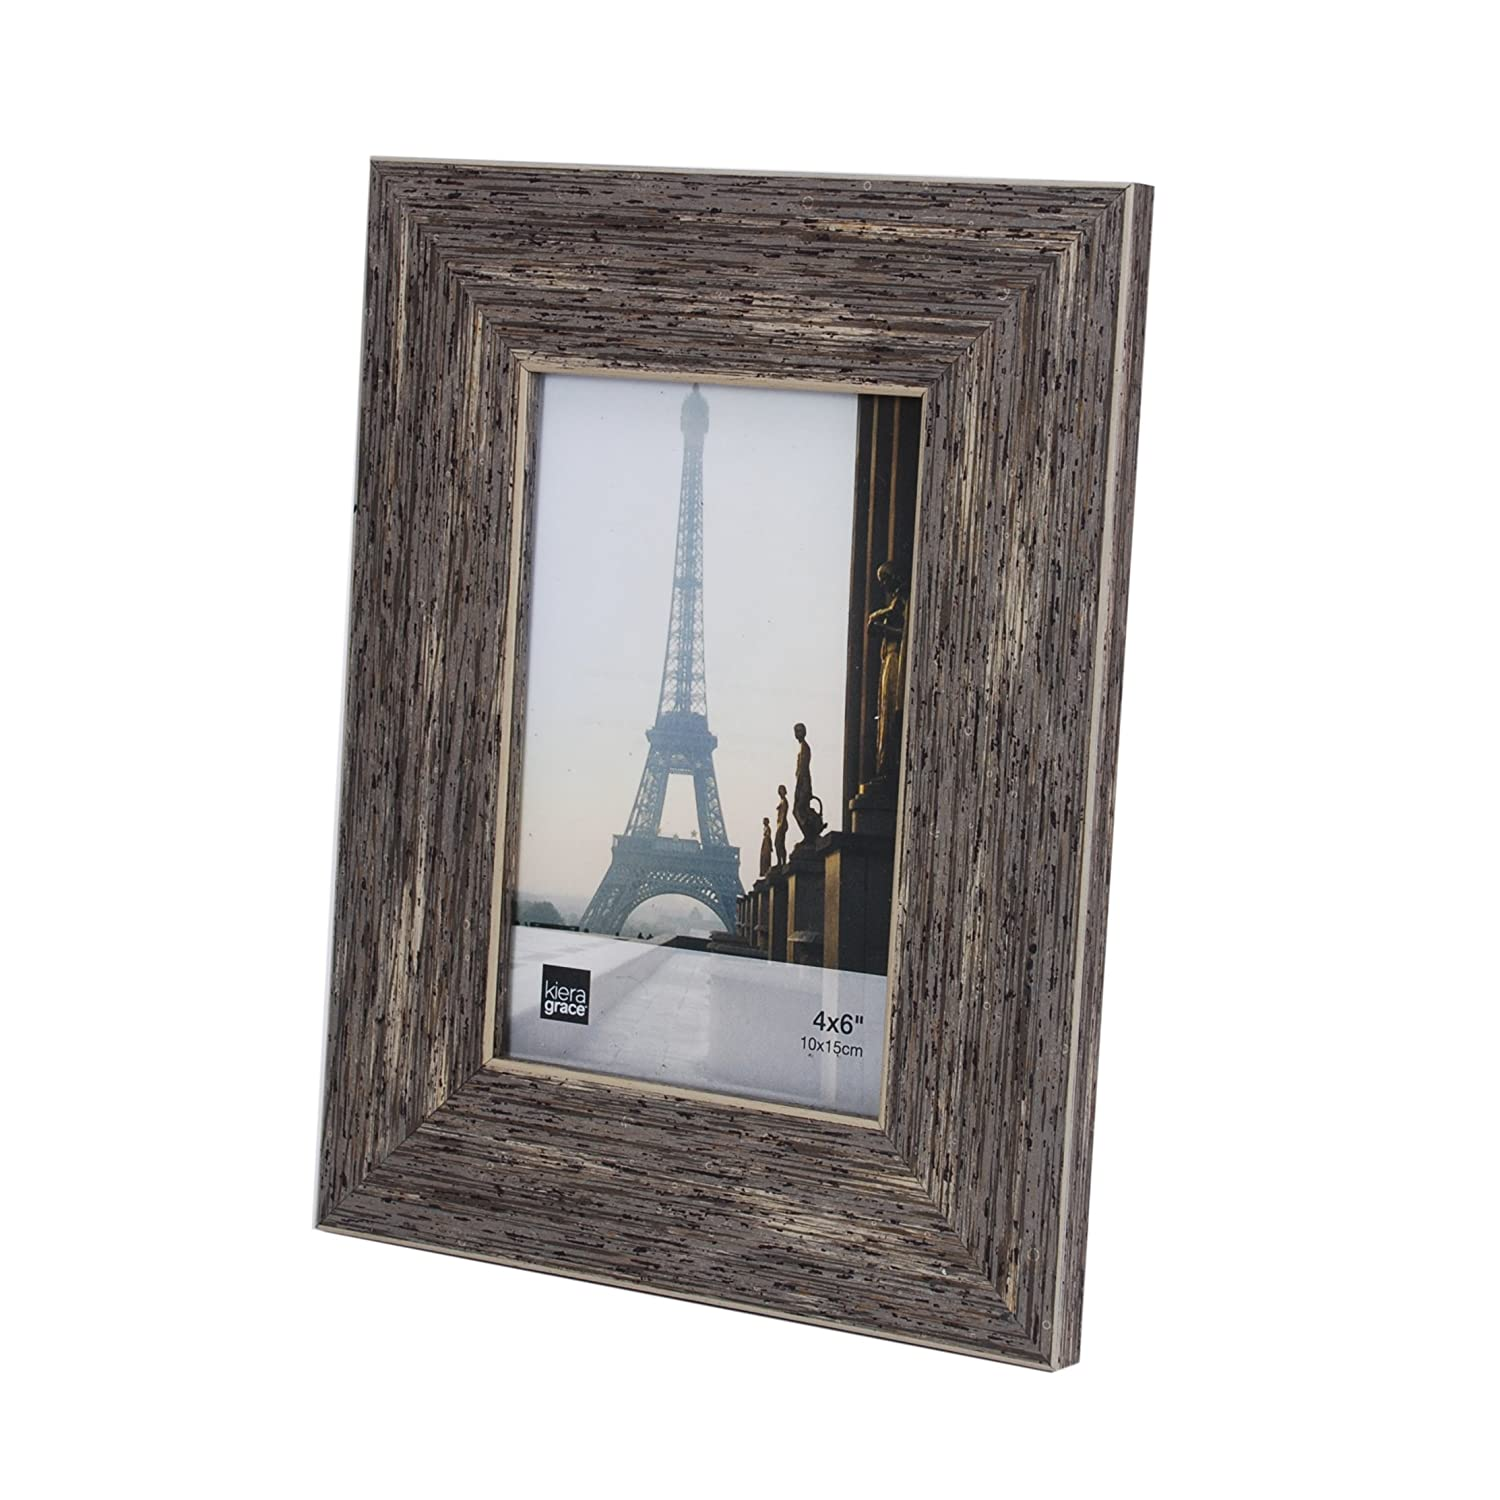 Amazon kiera grace emery picture frame 4 by 6 inch plastic amazon kiera grace emery picture frame 4 by 6 inch plastic resin weathered grey reclaimed wood veneer home kitchen jeuxipadfo Gallery